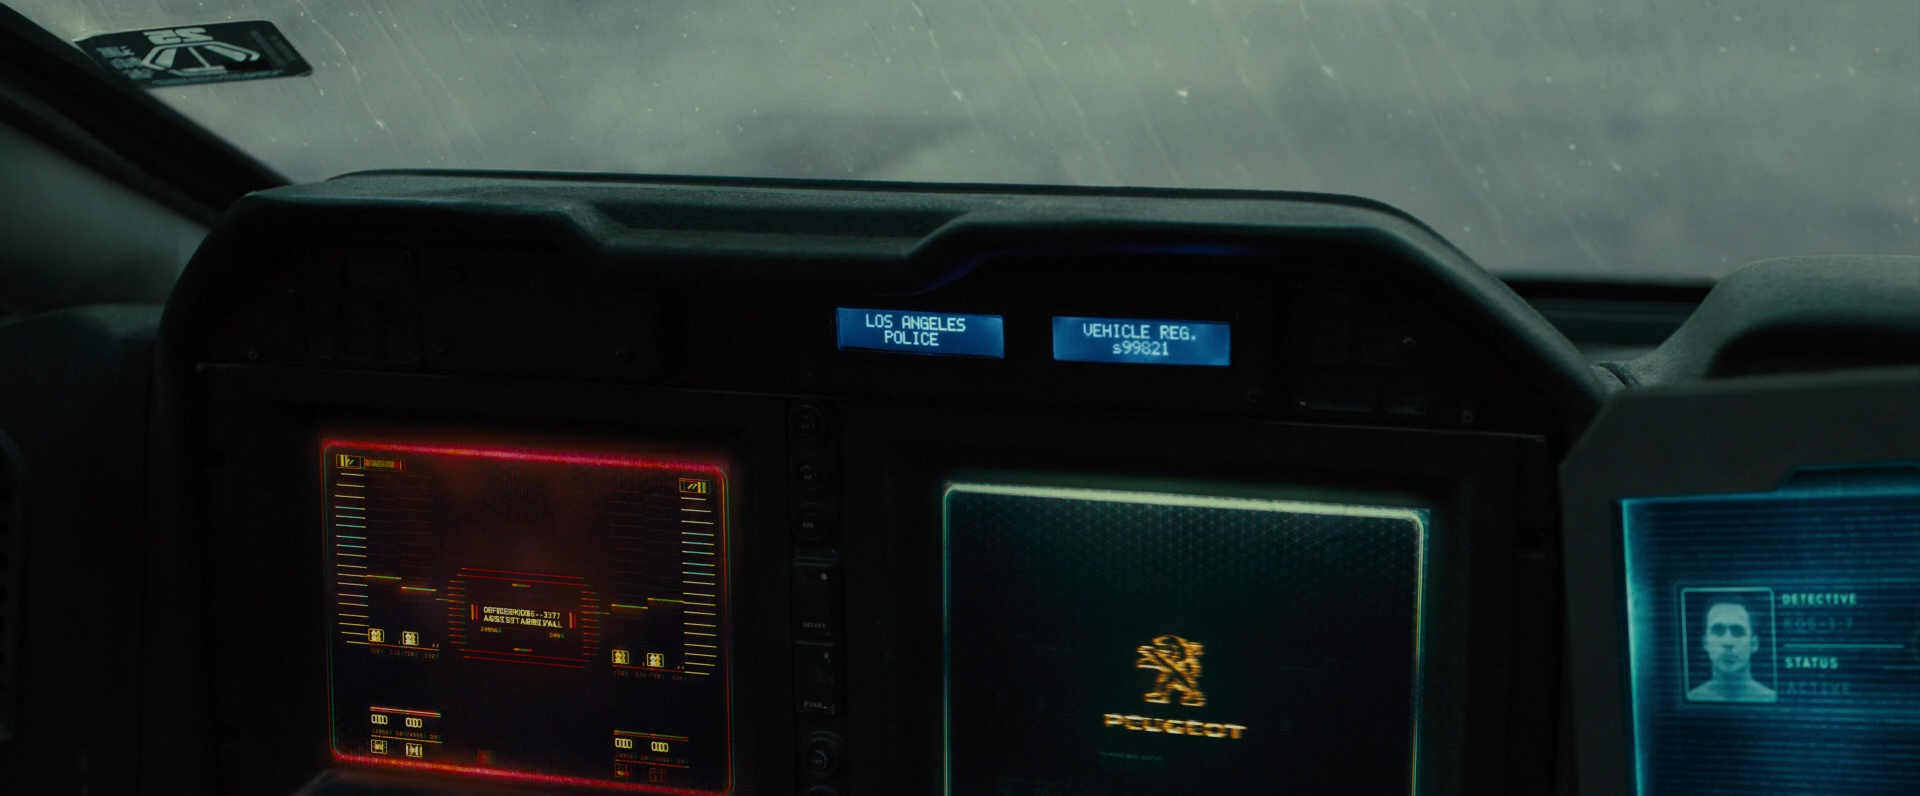 Peugeot Car Used By Ryan Gosling In Blade Runner